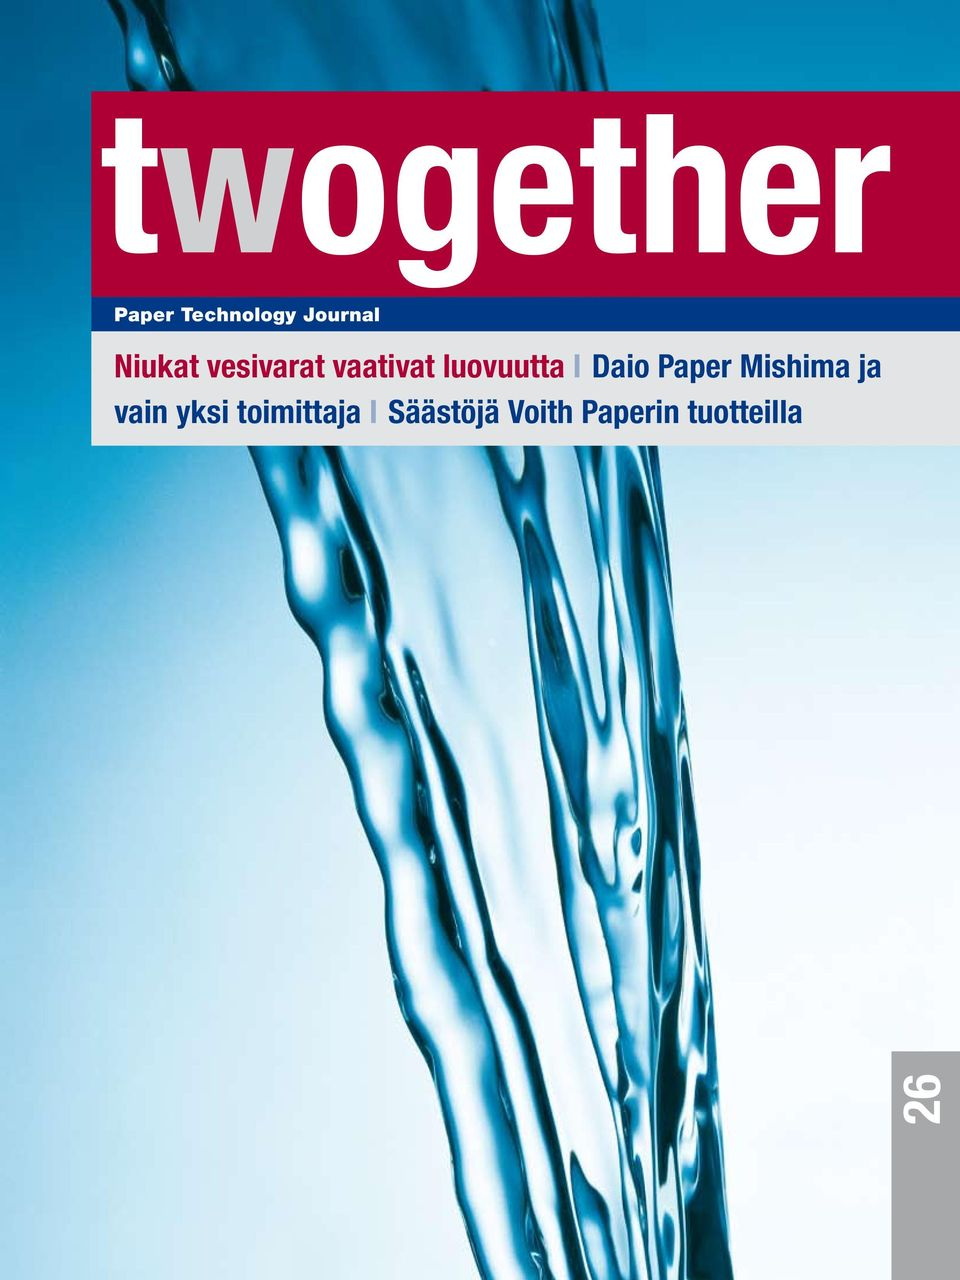 twogether paper technology journal Fermentation technology discusses the latest research innovations and important developments in this field.